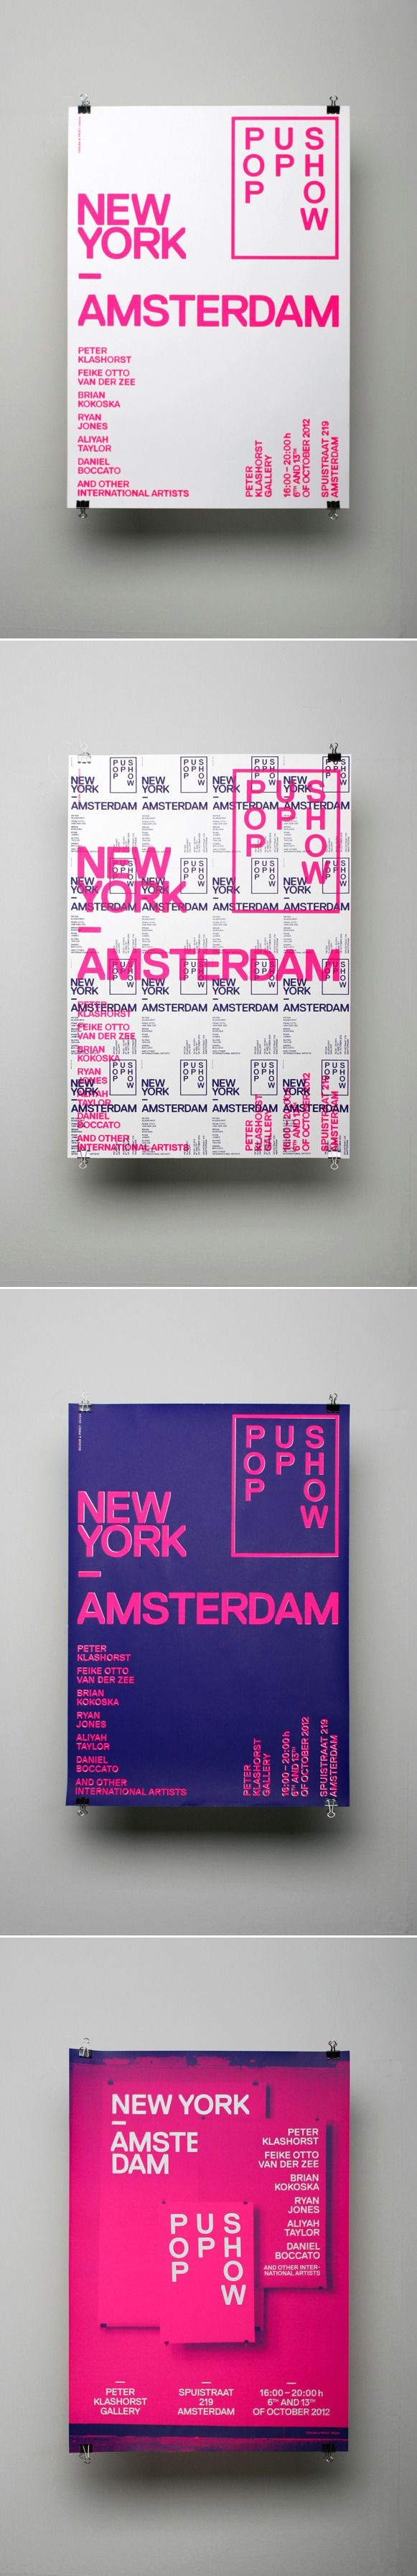 Poster design less is more - Find This Pin And More On Poster Design By Laurensprins